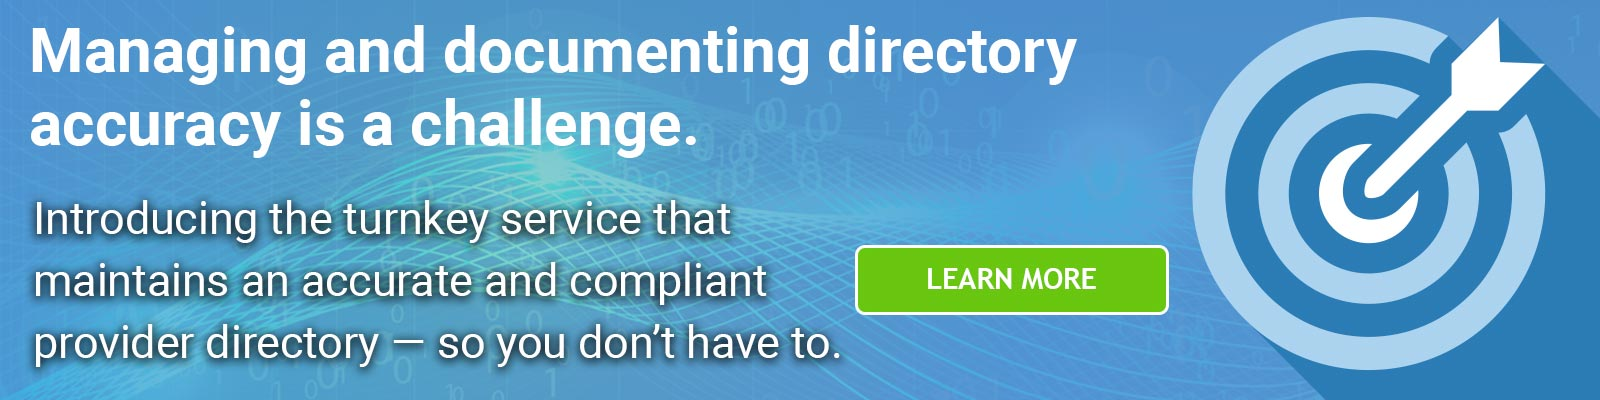 Managing and documenting directory accuracy is a challenge. Introducing the turnkey service that maintains an accurate and compliant provider directory - so you don't have to.